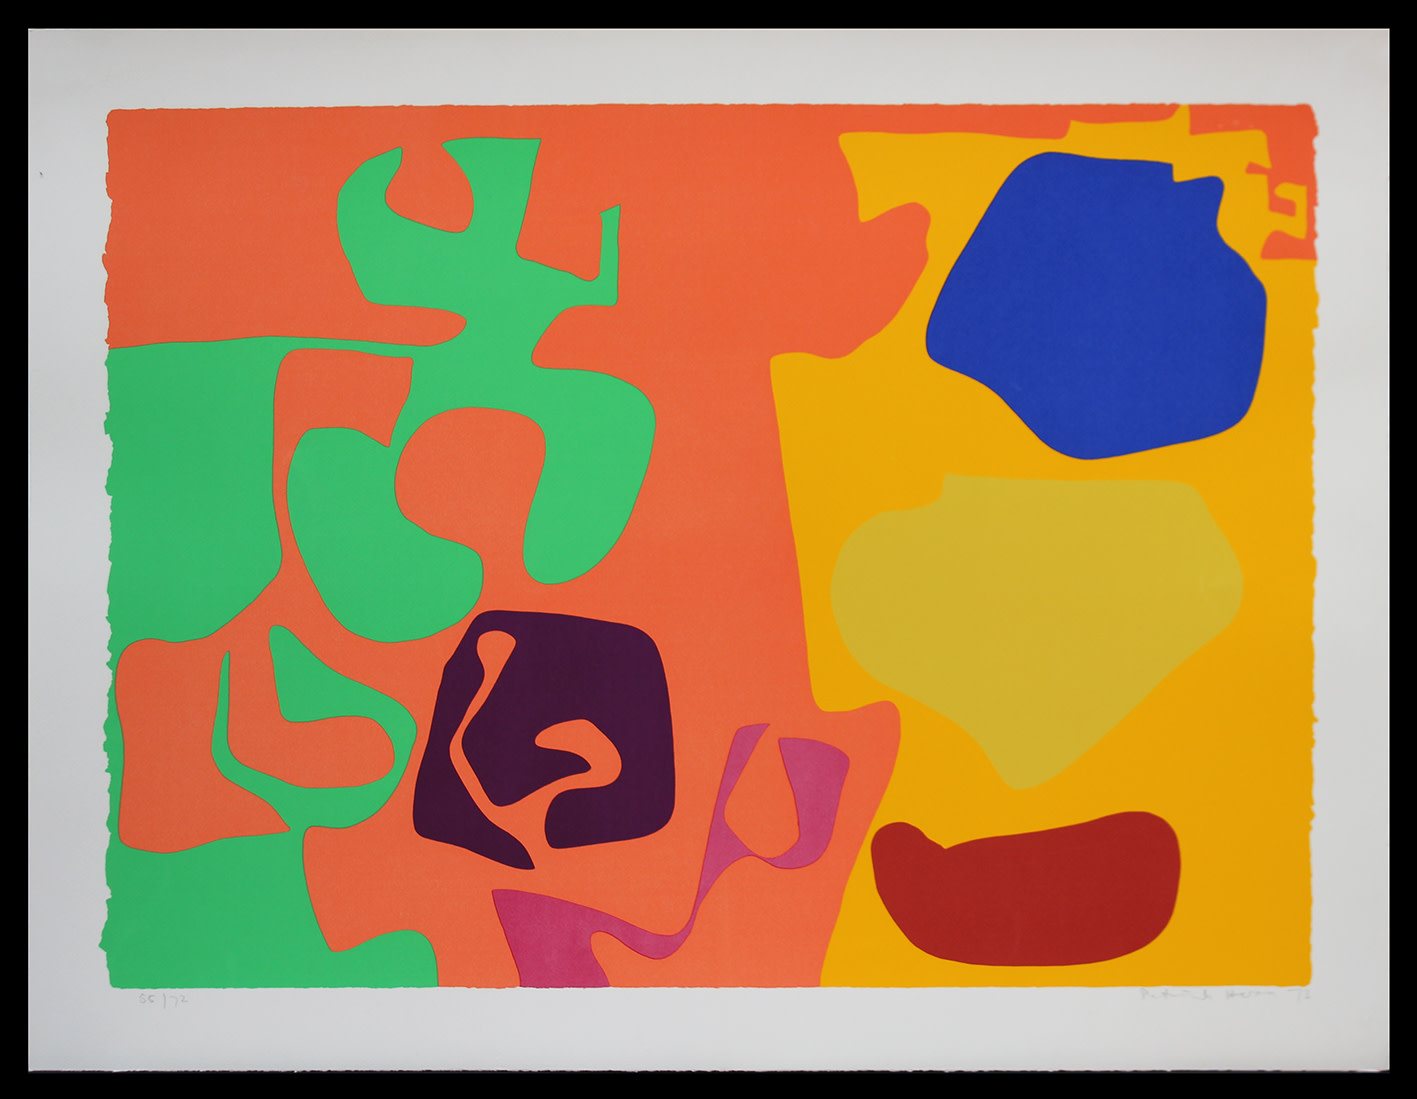 "<span class=""link fancybox-details-link""><a href=""/artists/93-patrick-heron-cbe/works/4478-patrick-heron-cbe-january-1973-10-1973/"">View Detail Page</a></span><div class=""artist""><strong>Patrick Heron CBE</strong></div> 1920 – 99 <div class=""title""><em>January 1973 : 10</em>, 1973</div> <div class=""signed_and_dated"">signed, dated and numbered in pencil</div> <div class=""medium"">silkscreen print in colours on wove paper, with full margins</div> <div class=""dimensions"">Image size: 23 1/8 x 32 1/8 in<br /> Sheet size: 27 3/8 x 36 1/8 in</div> <div class=""edition_details"">Edition 55 of 72</div><div class=""copyright_line"">© The Estate of Patrick Heron</div>"